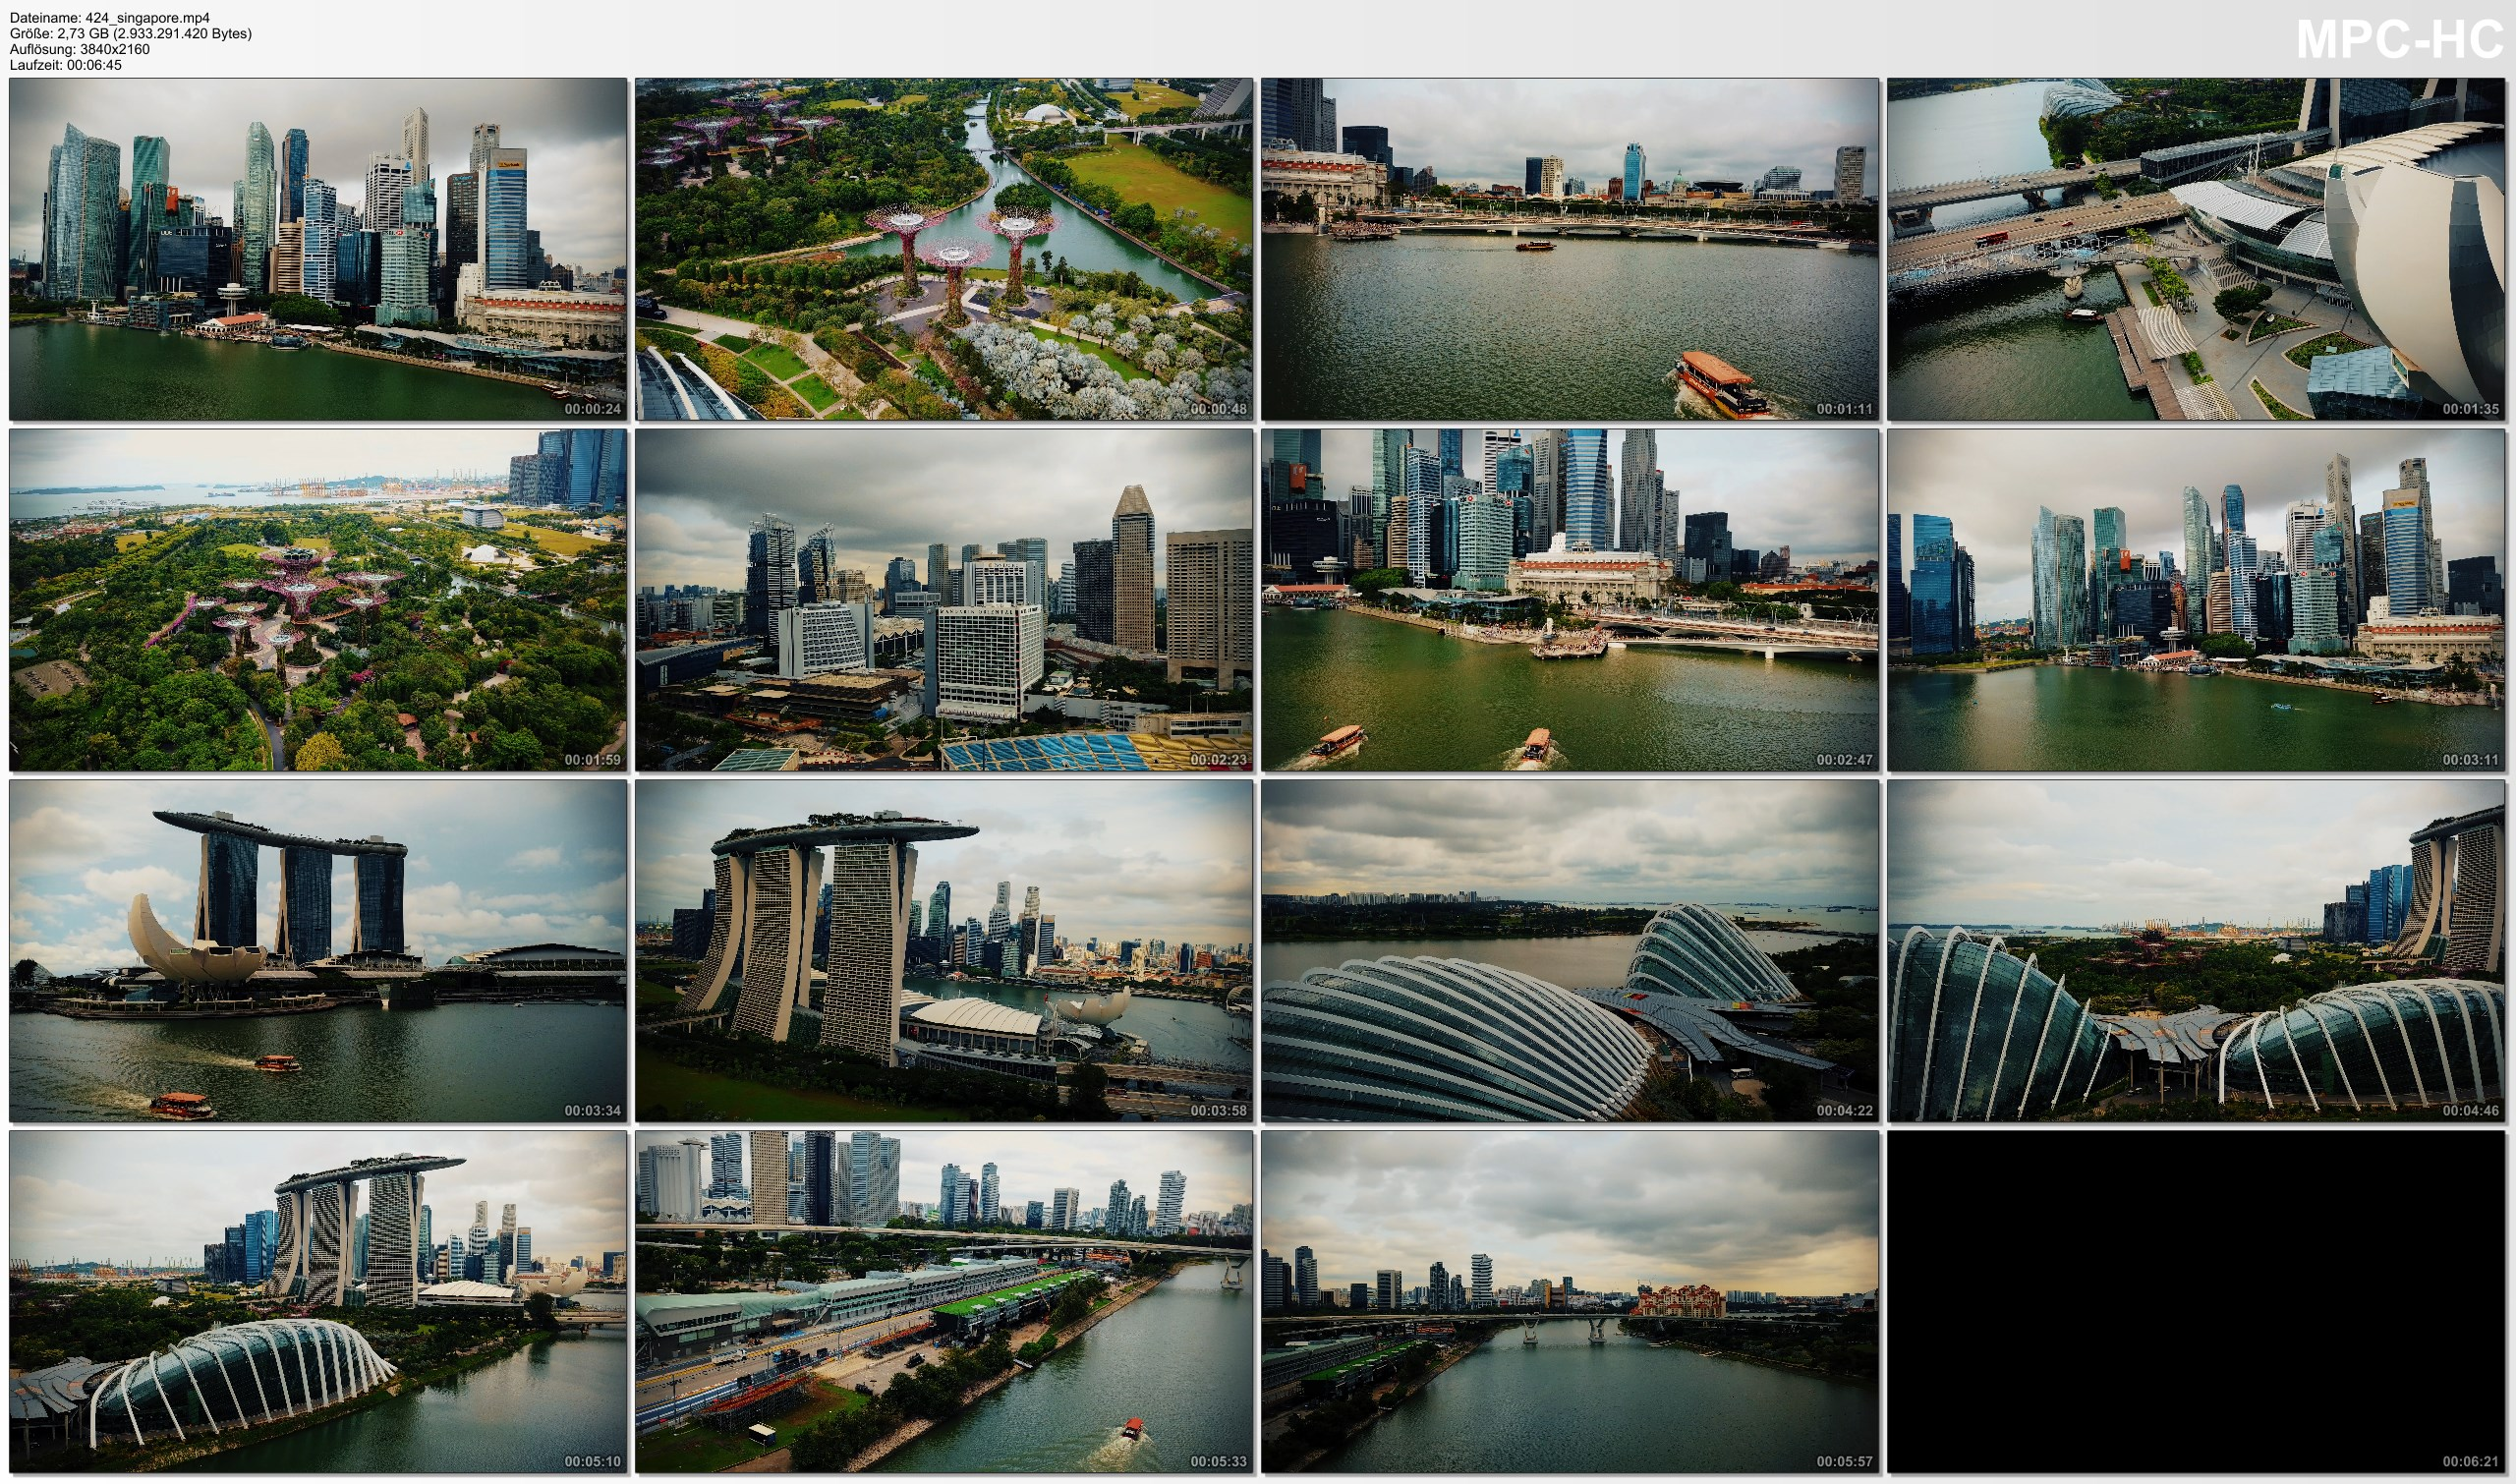 Drone Pictures from Video 【4K】Drone Footage | Marina Bay and Gardens by the Bay - SINGAPORE 2019 ..:: Cinematic Aerial Film